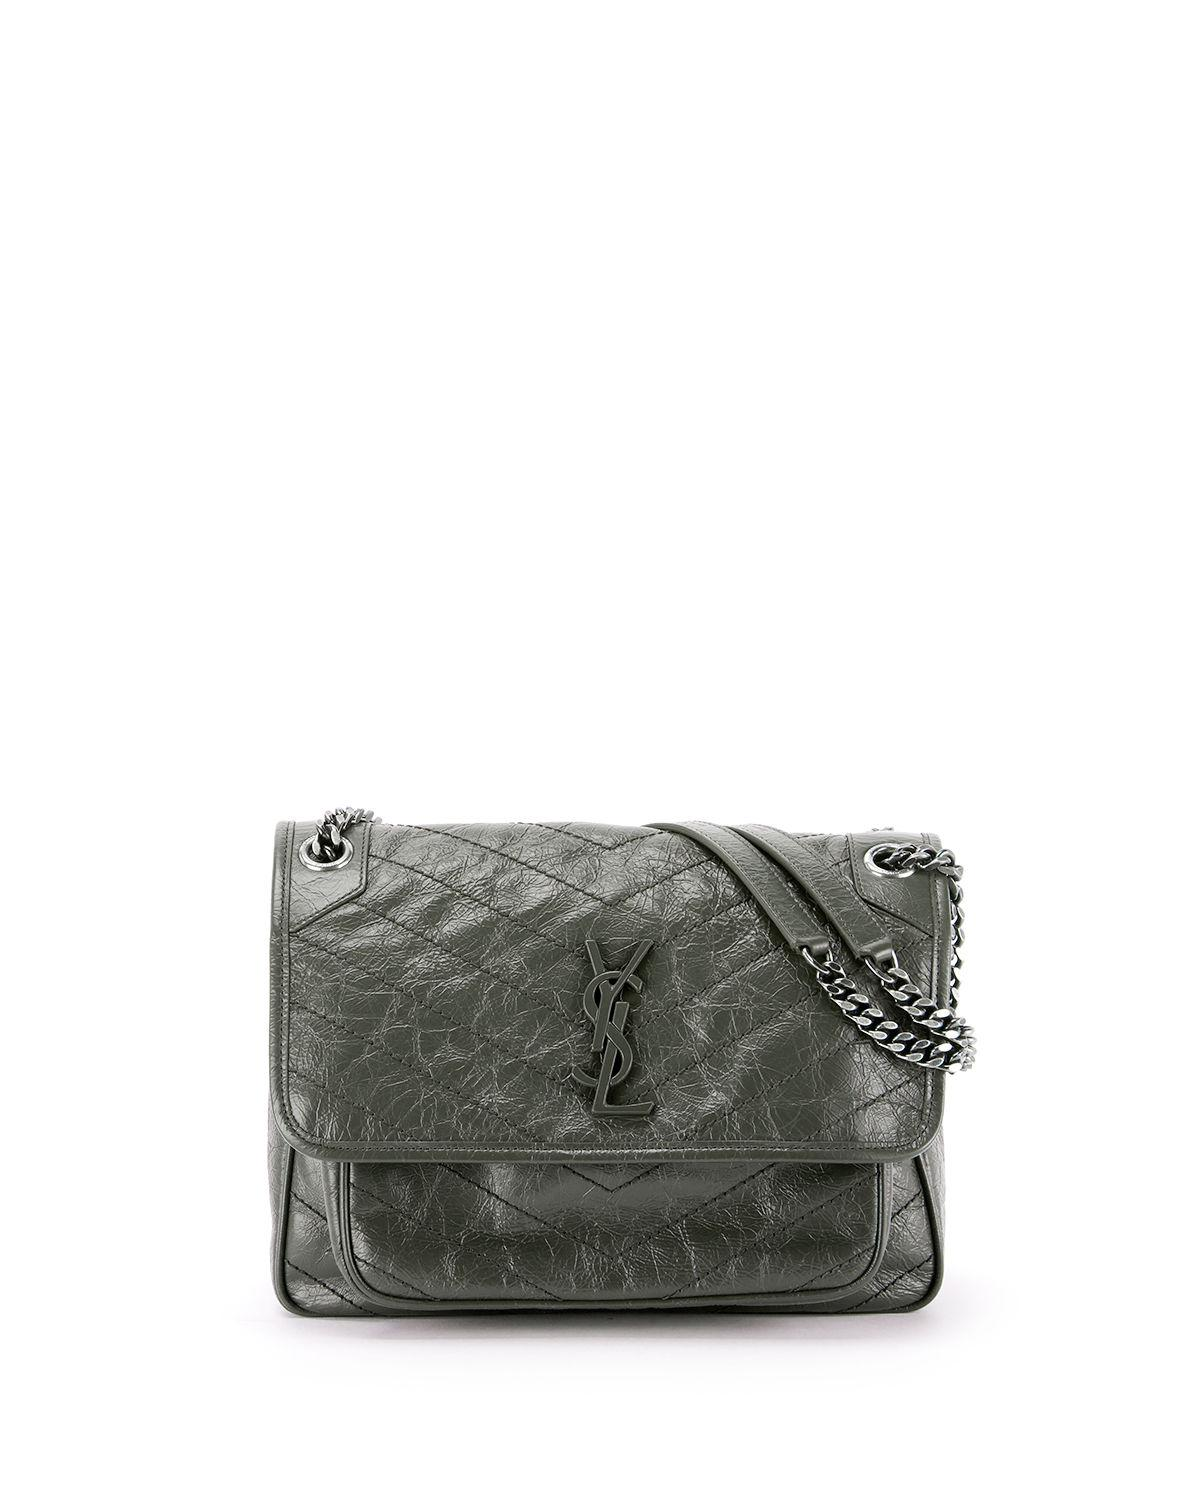 3eac8e84fa Saint Laurent Niki Medium Monogram Ysl Shiny Waxy Quilted Shoulder Bag In  Dark Green